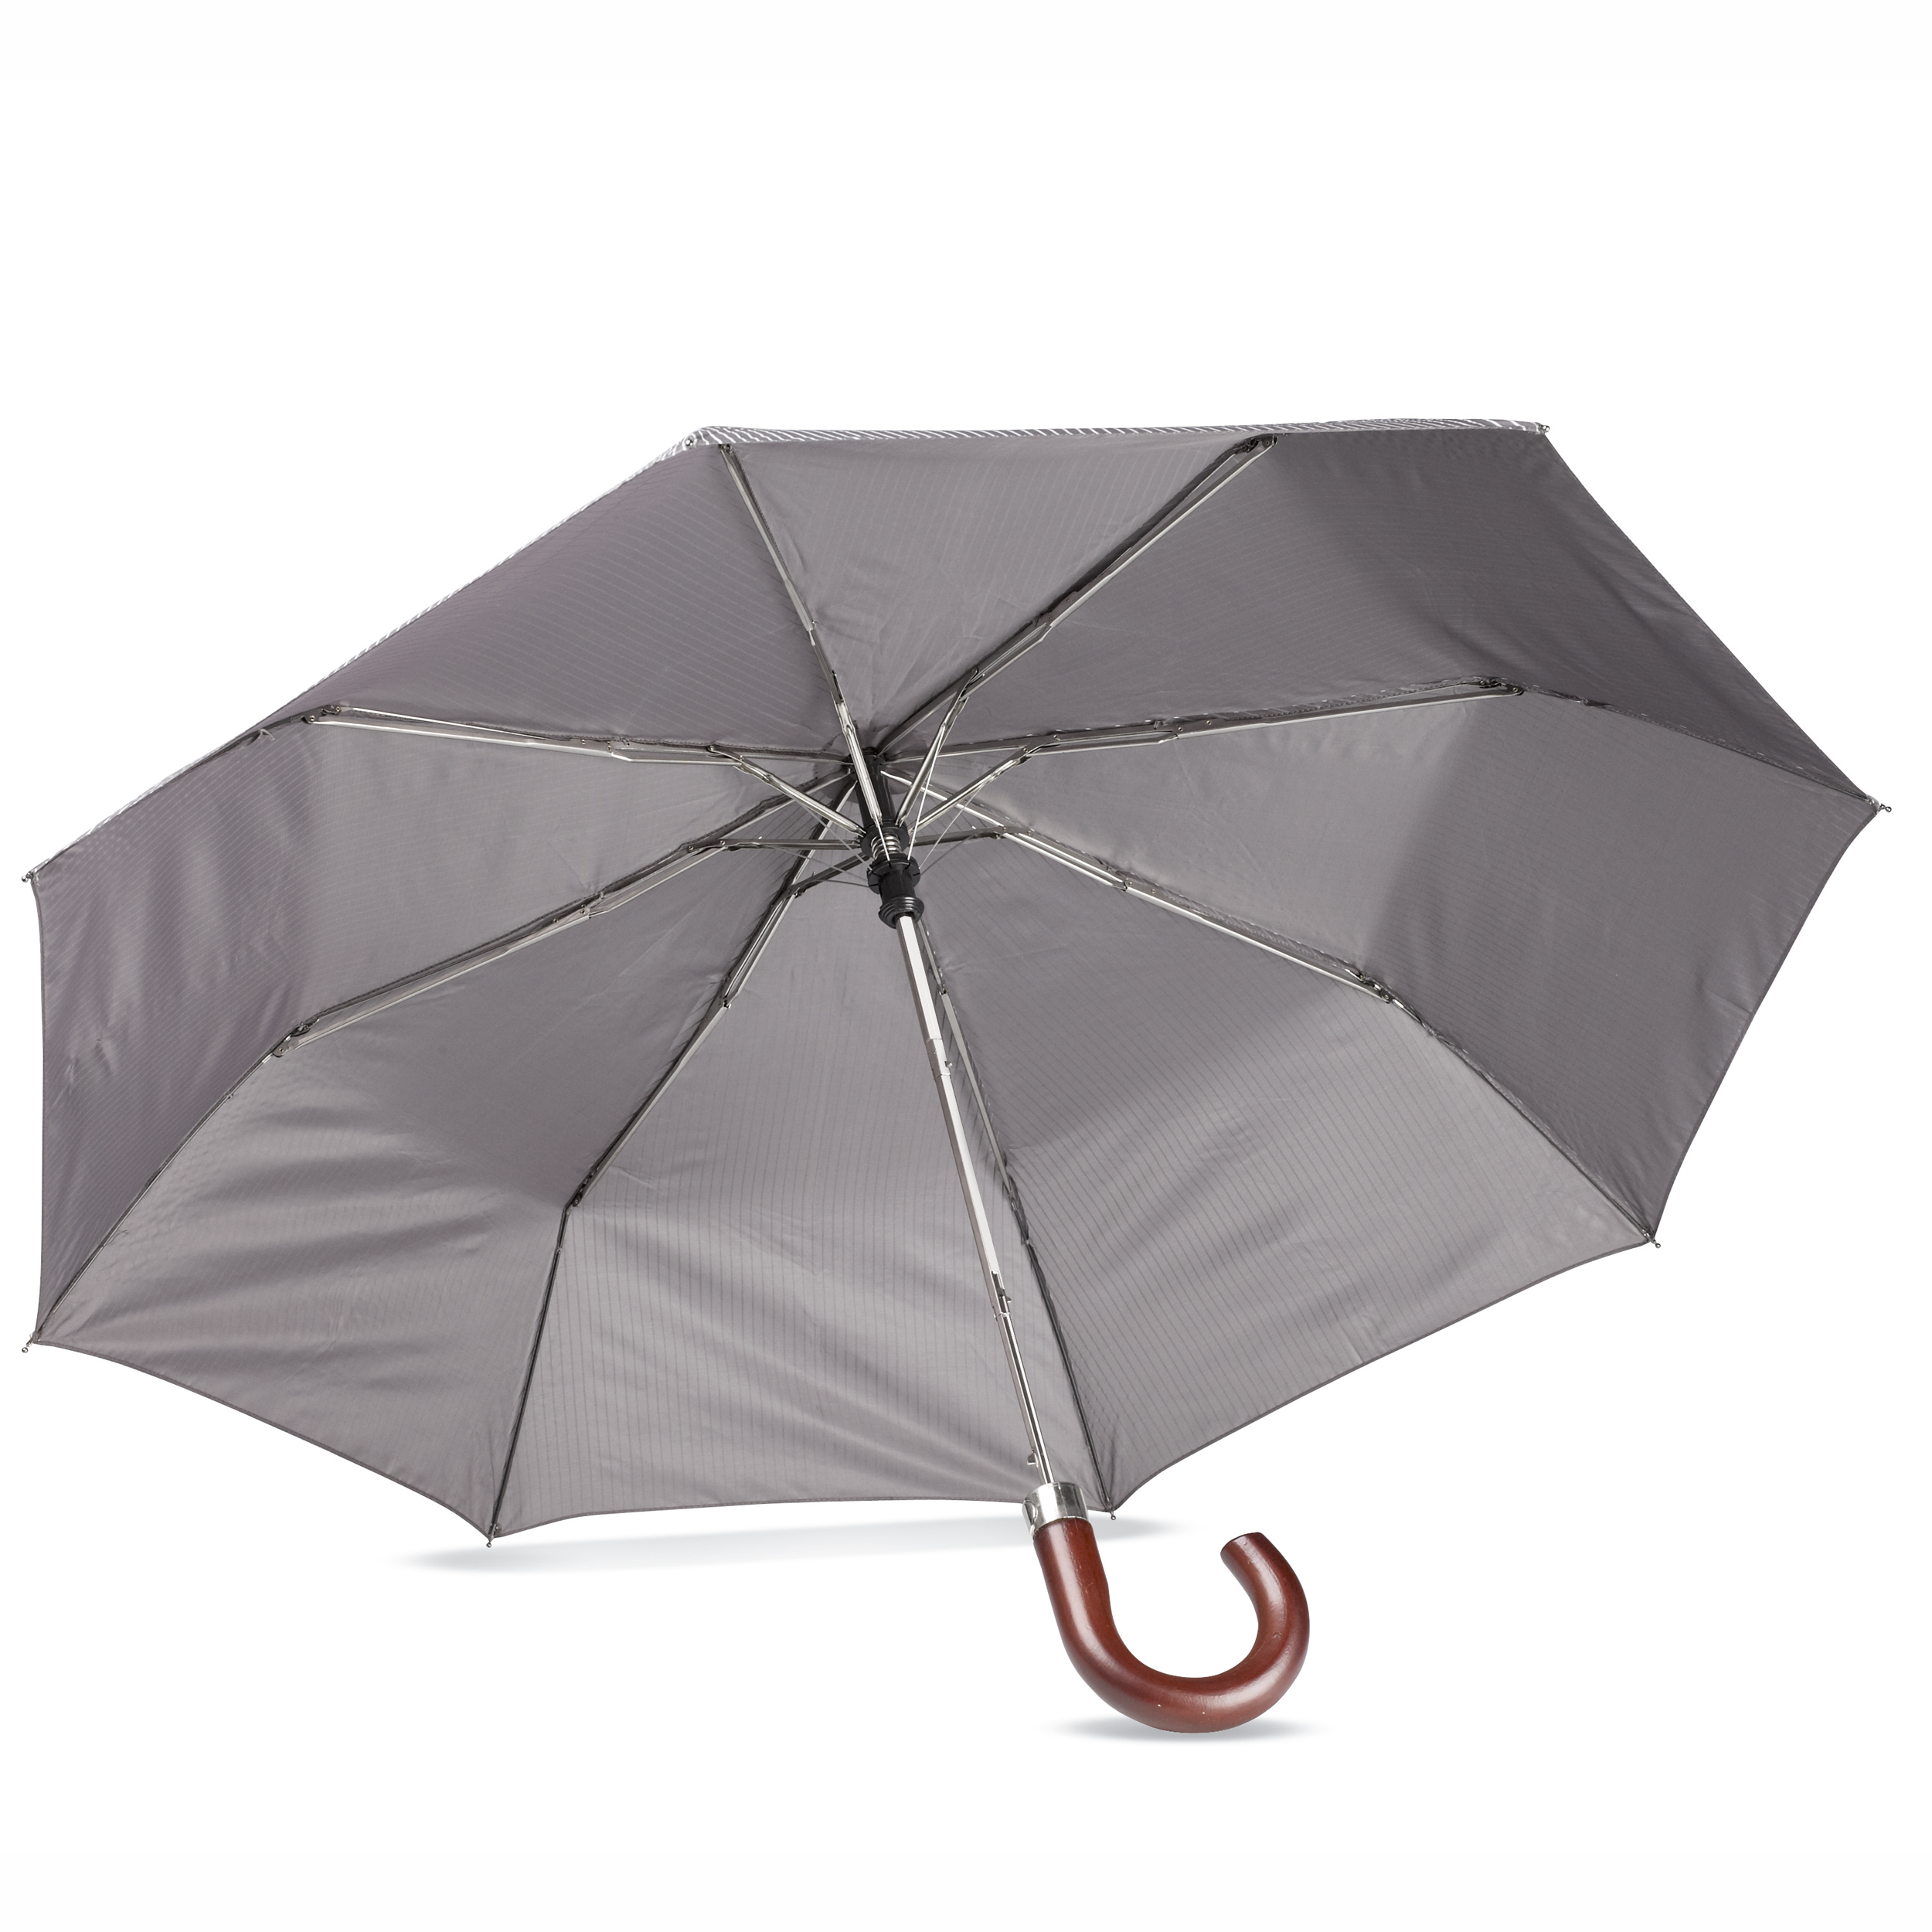 Business-umbrella-CROOKED-WOODEN-HANDLE-Auto-Opening-FIBERGLASS-RIBS-Steel-Frame